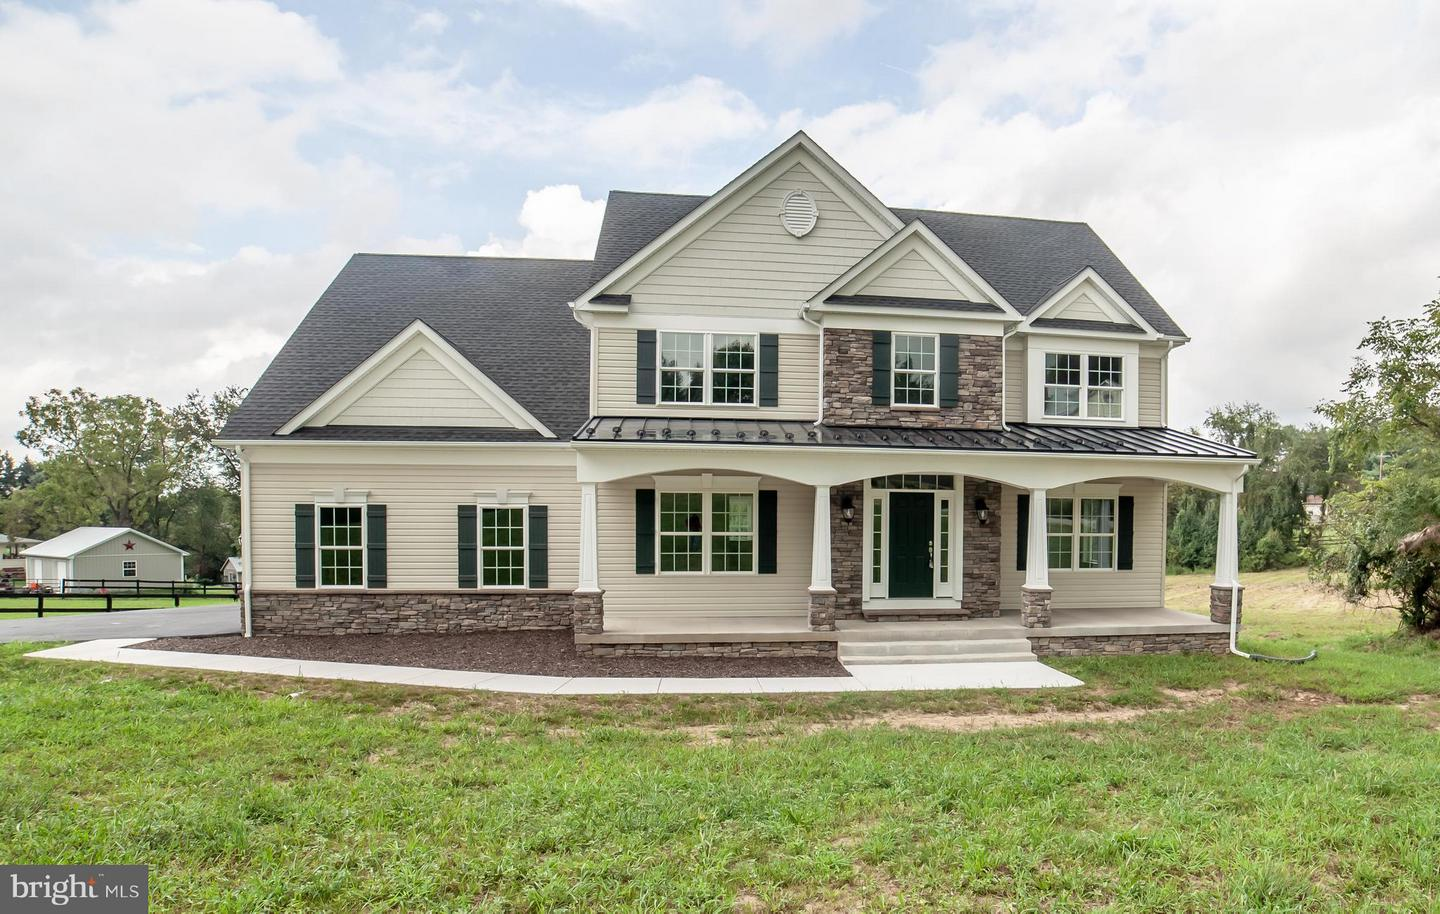 Single Family for Sale at 4921 Jenkins Ln Baldwin, Maryland 21013 United States